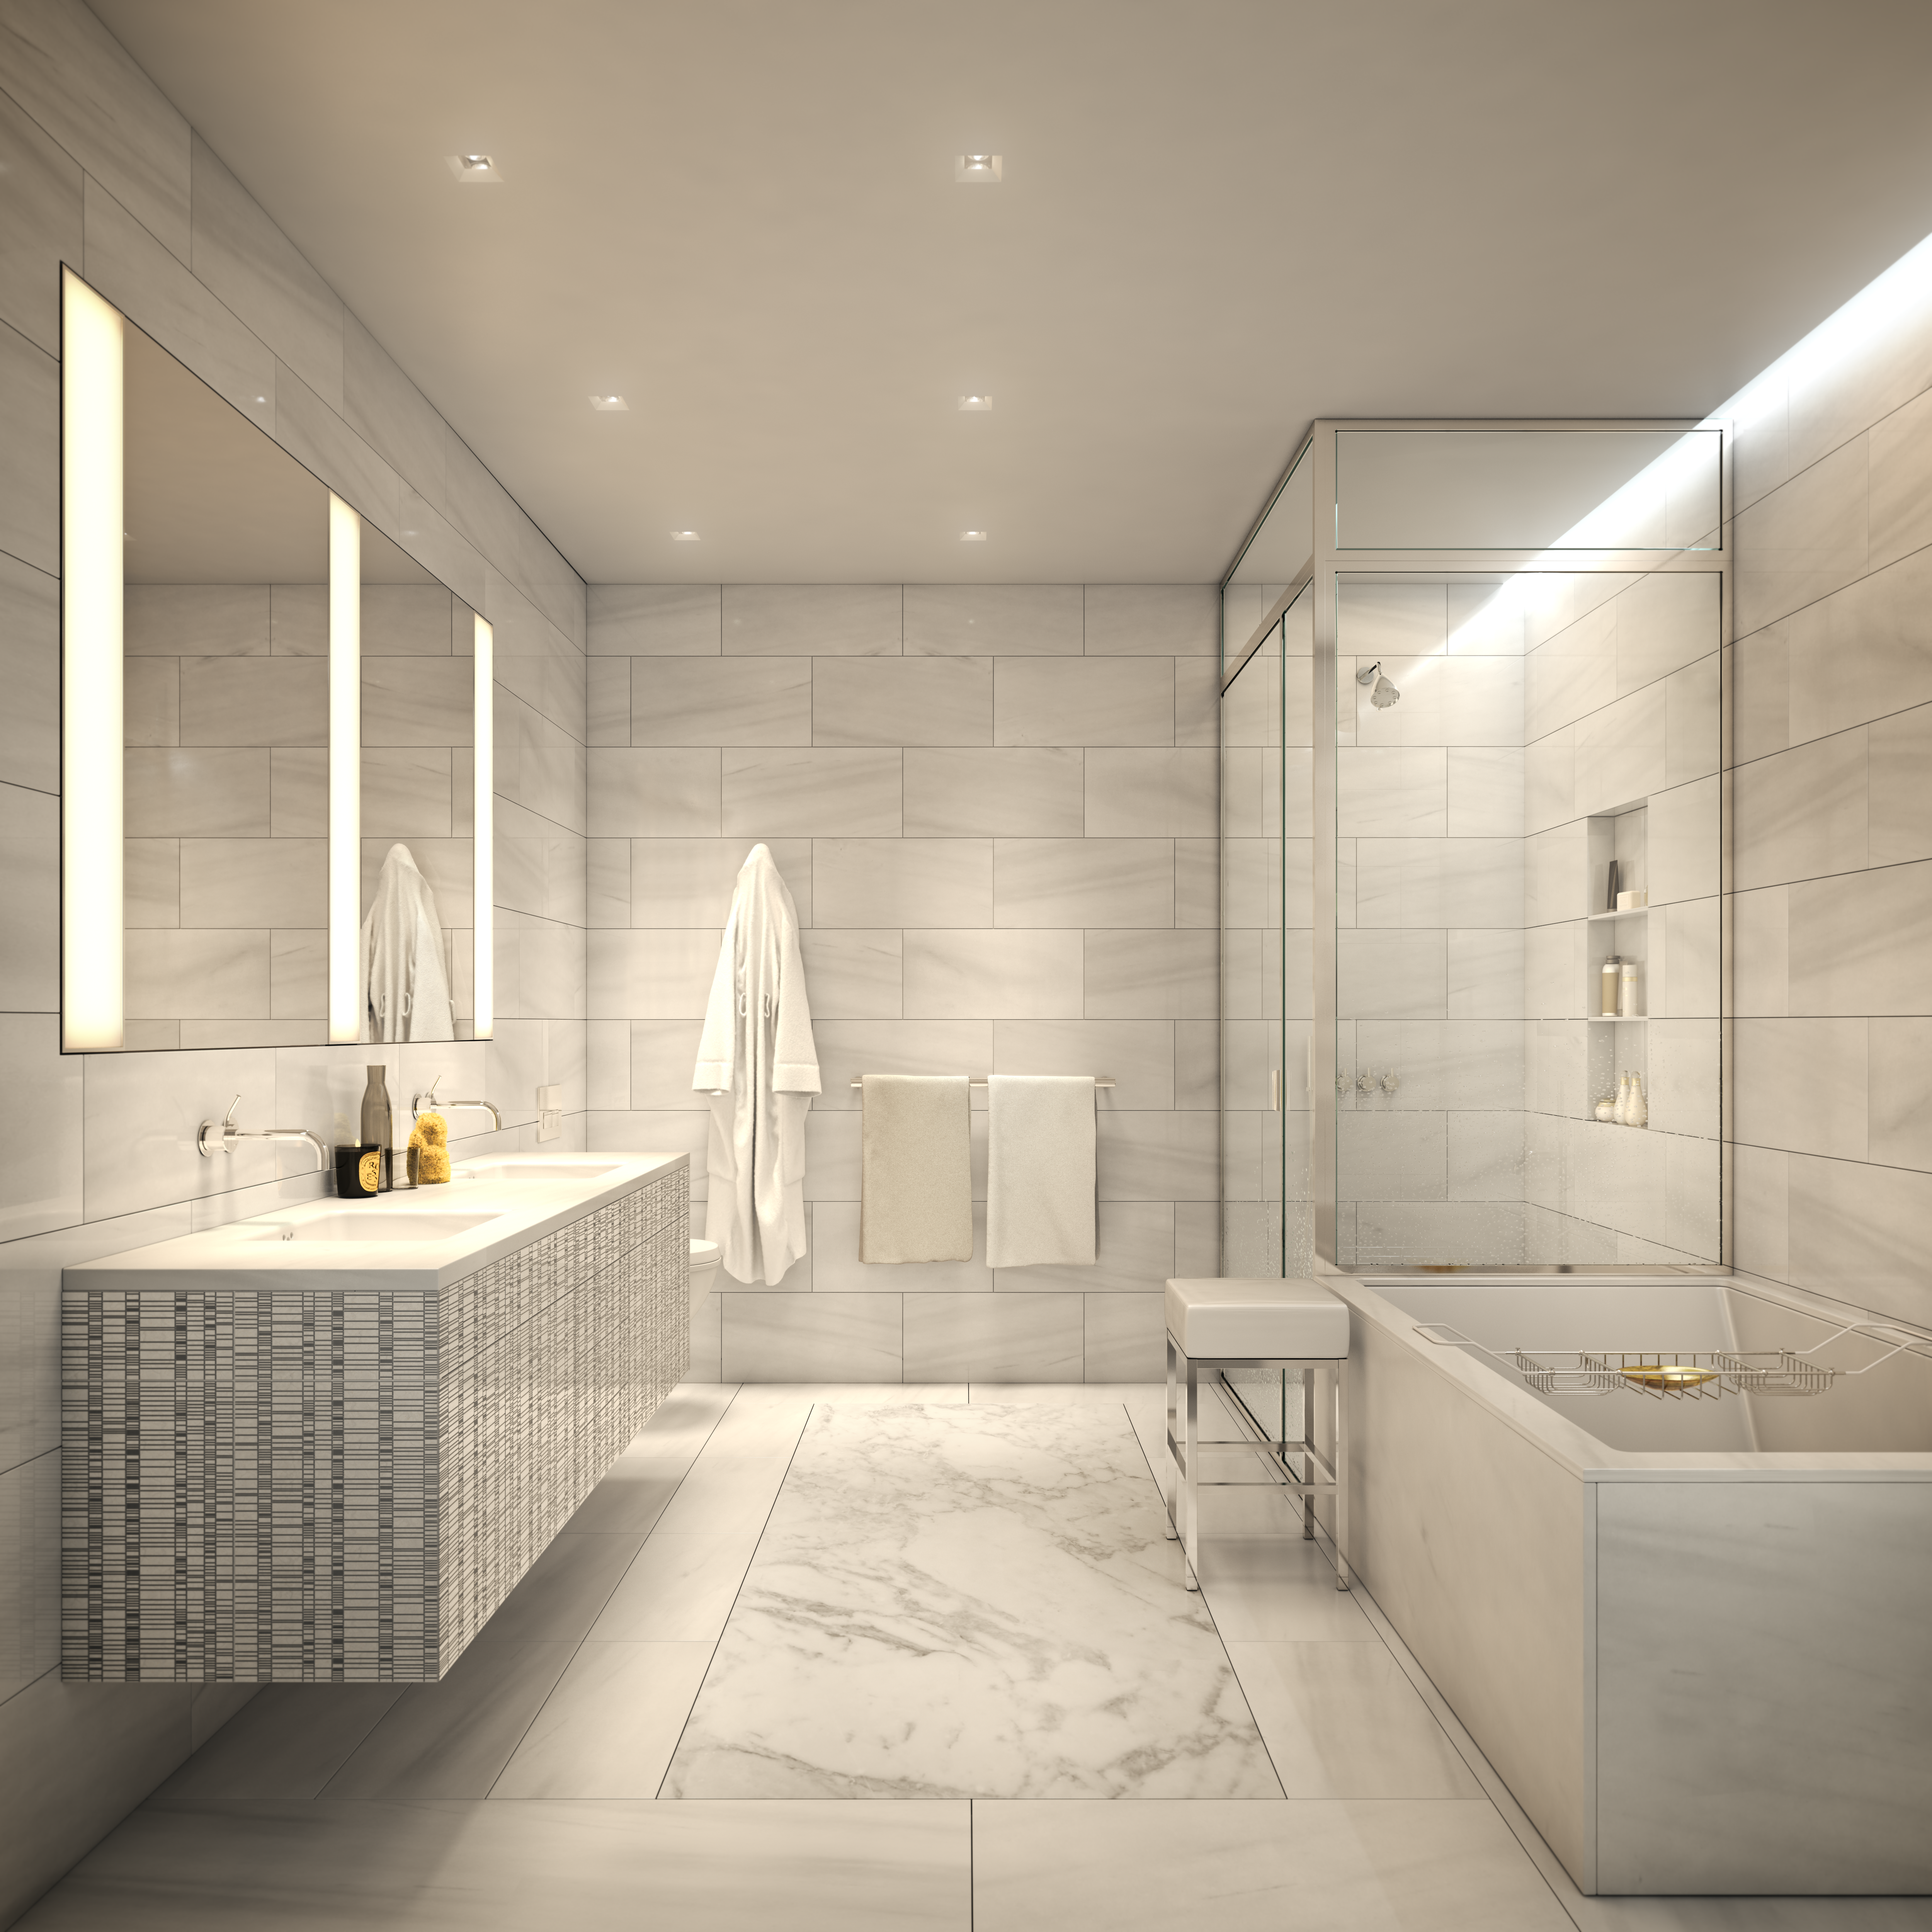 tribeca condos - master bathroom 2